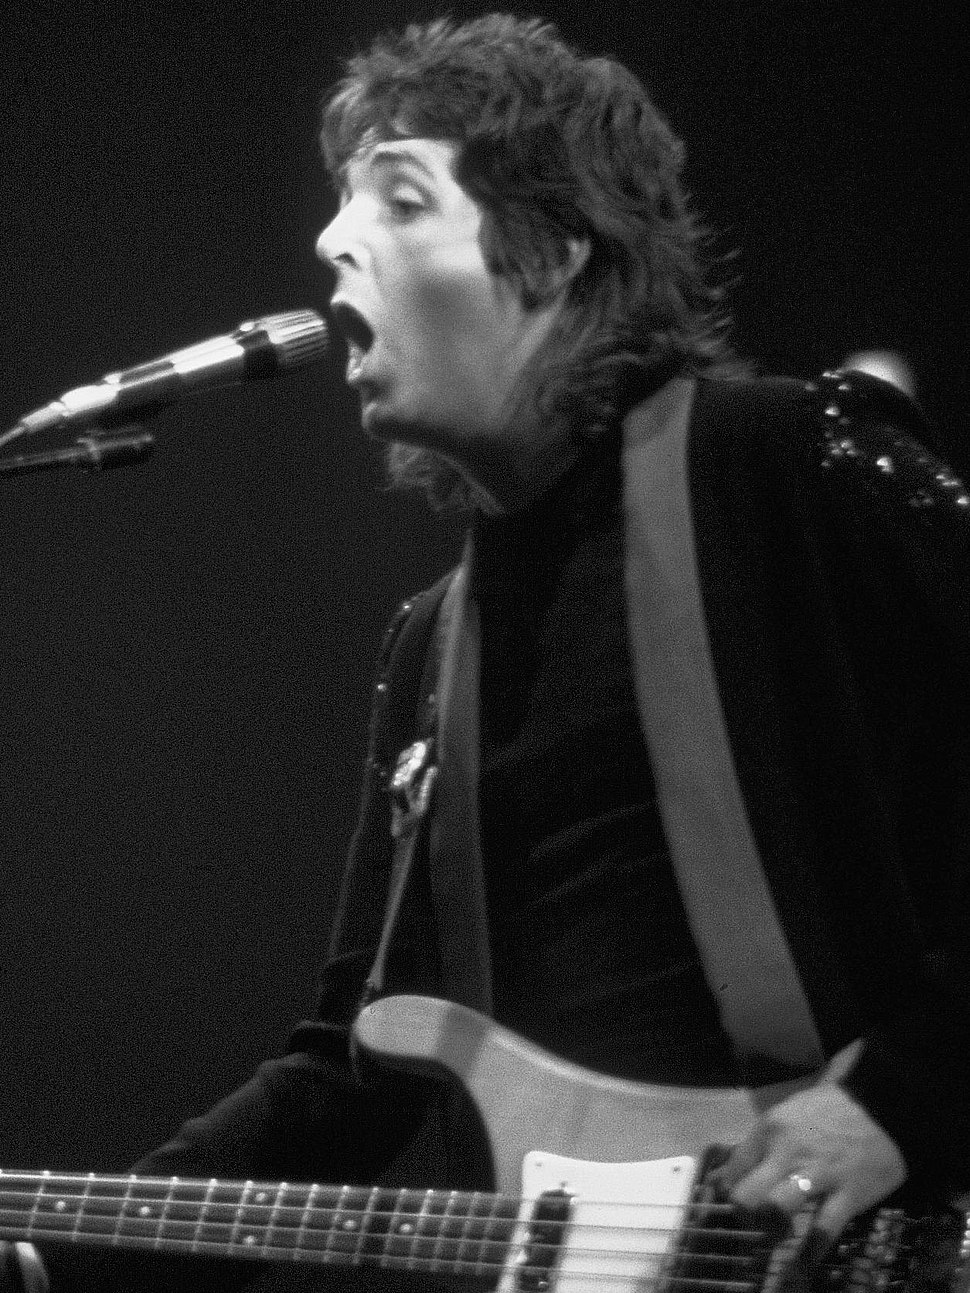 Paul McCartney during a Wings concert, 1976 (34 cropped)